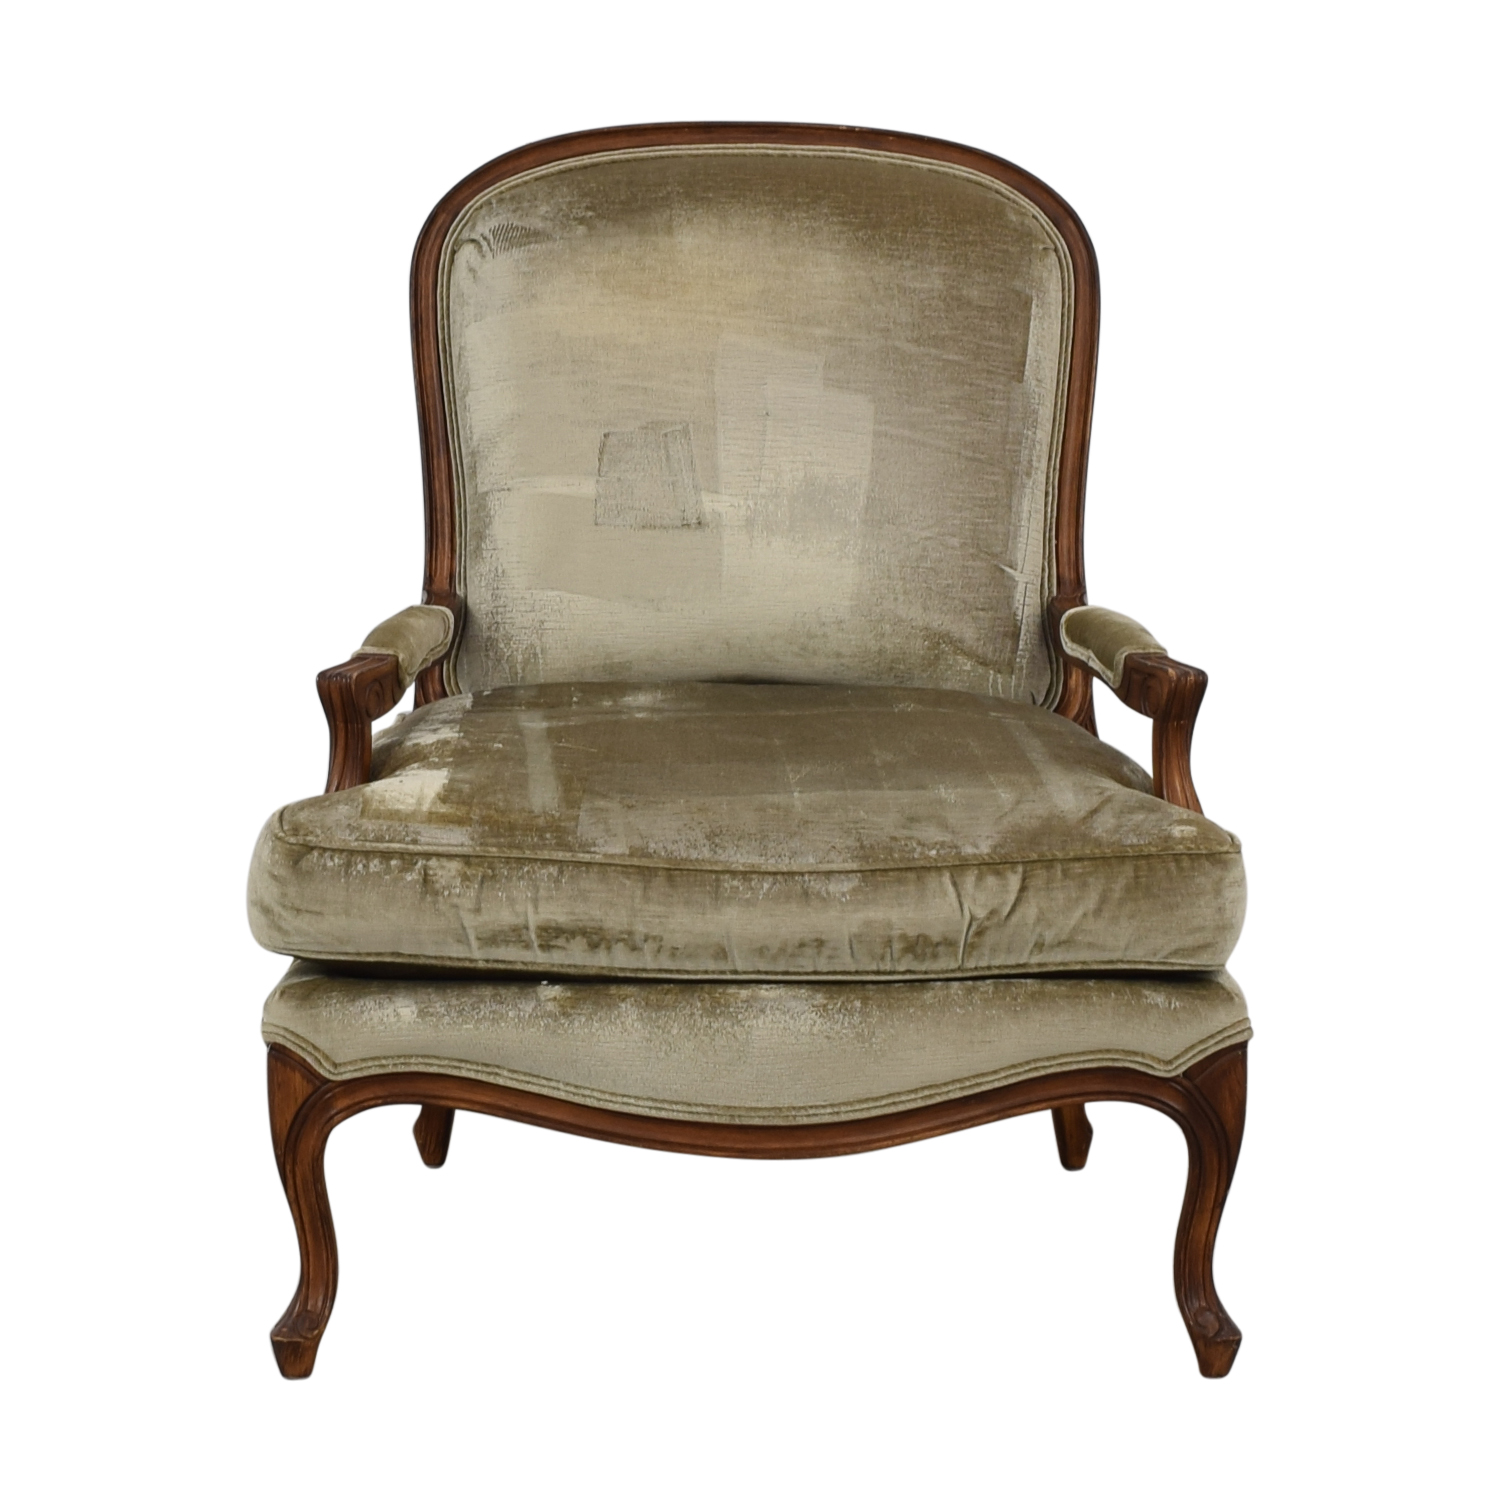 Drexel Heritage Drexel Heritage Country French Accent Chair